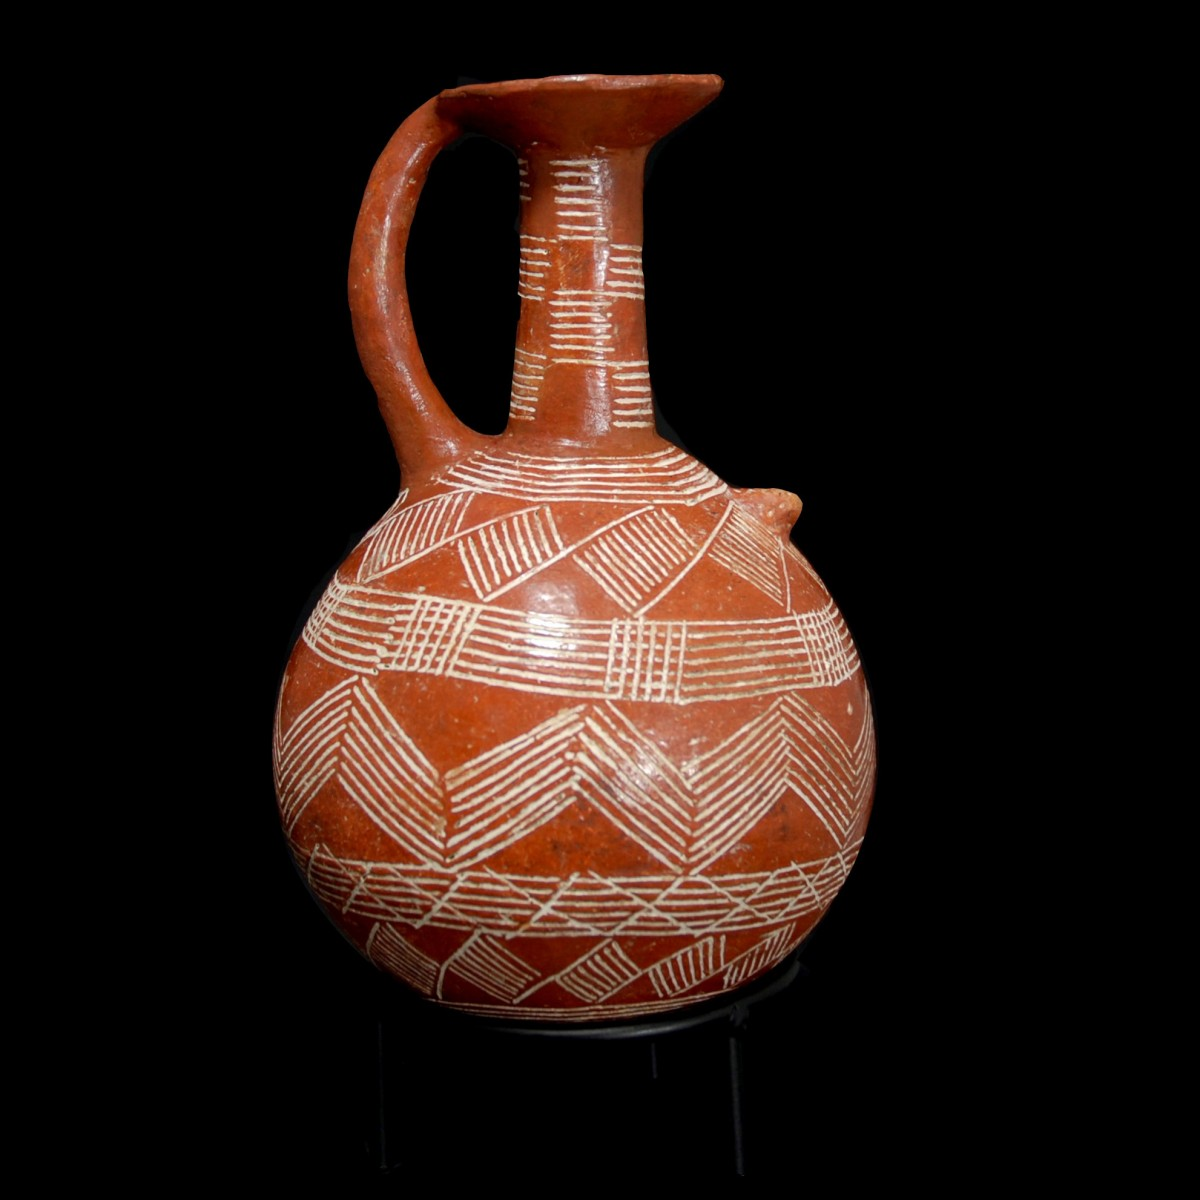 Cypriot jug of the red-polished ware